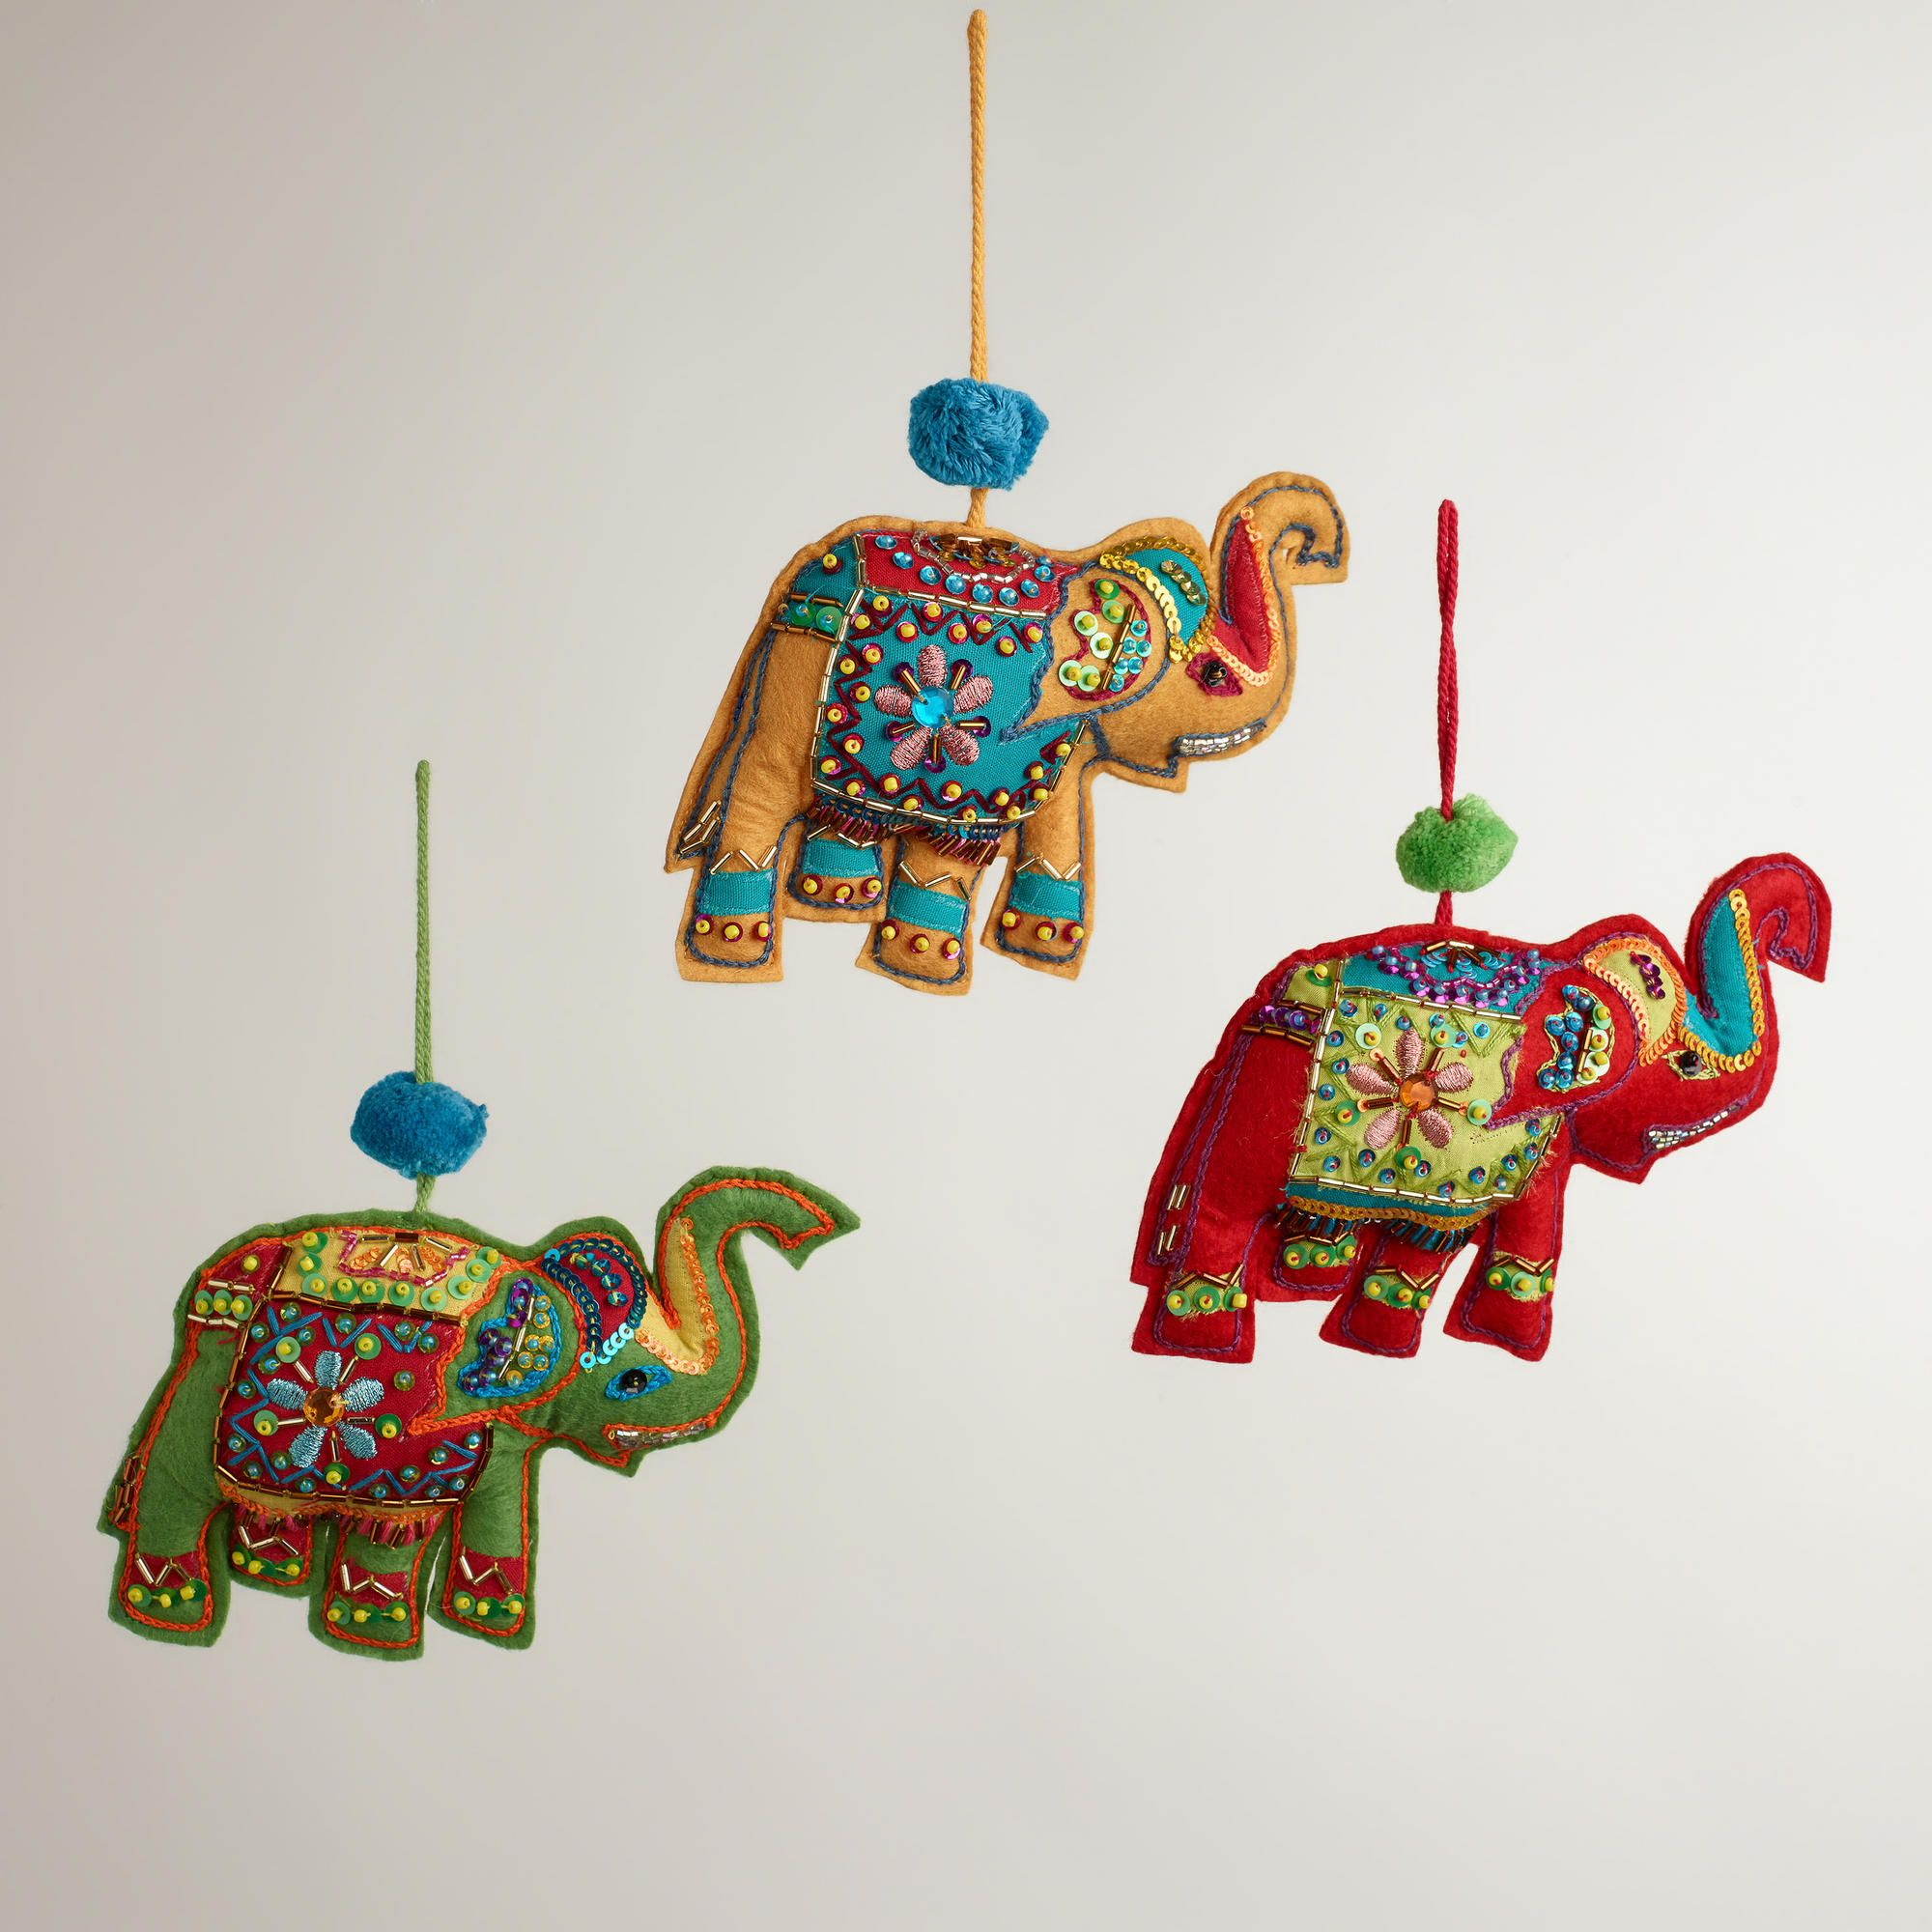 Embroidered Fabric Indian Elephant Ornaments, Set of 3 | World ...